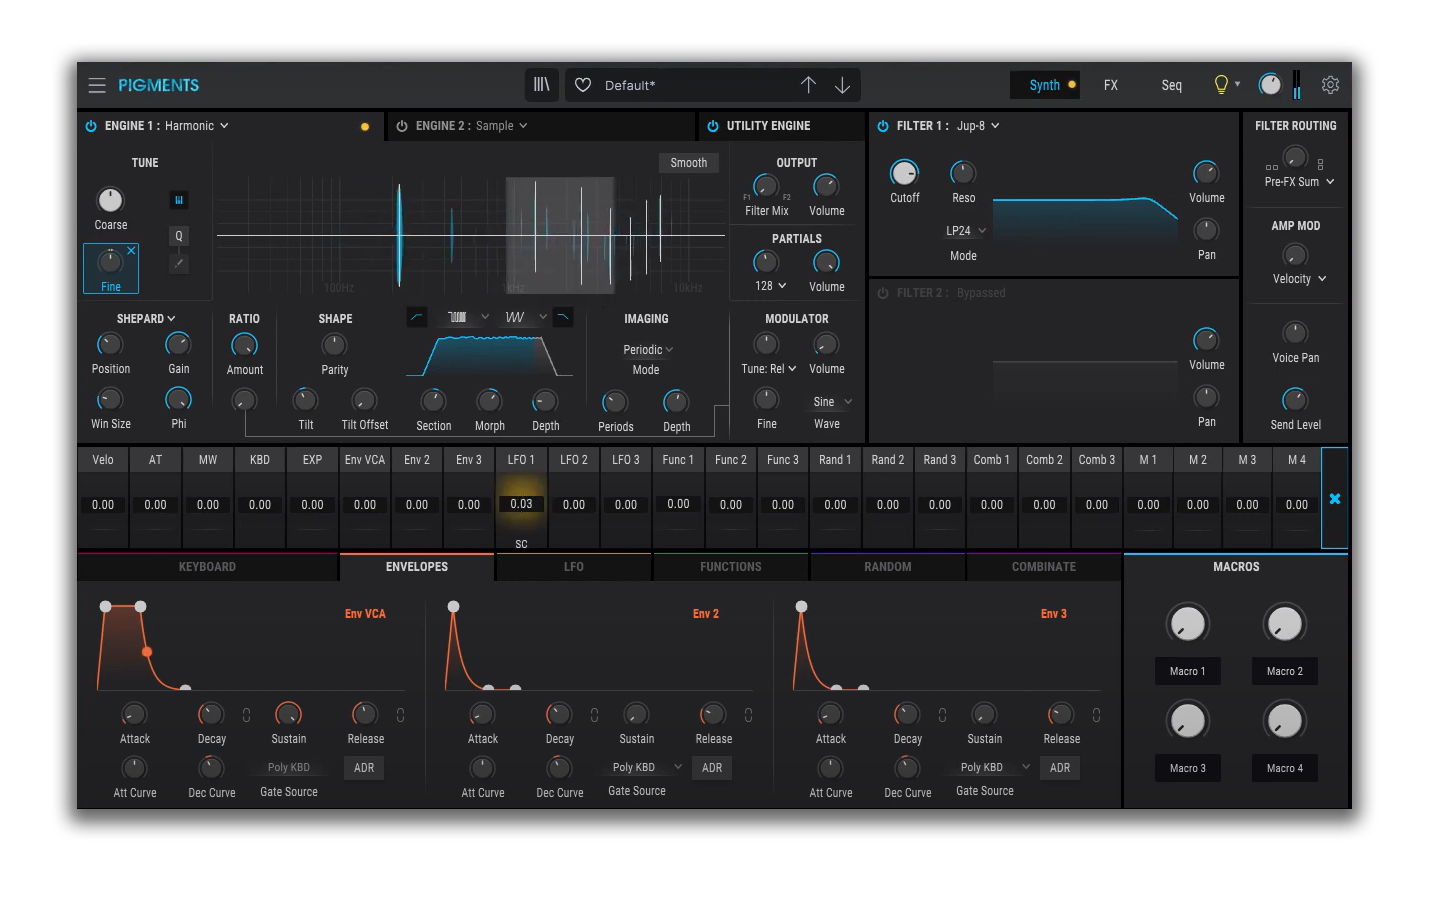 Pigments 3 is one of the best VST synth plugins of 2021